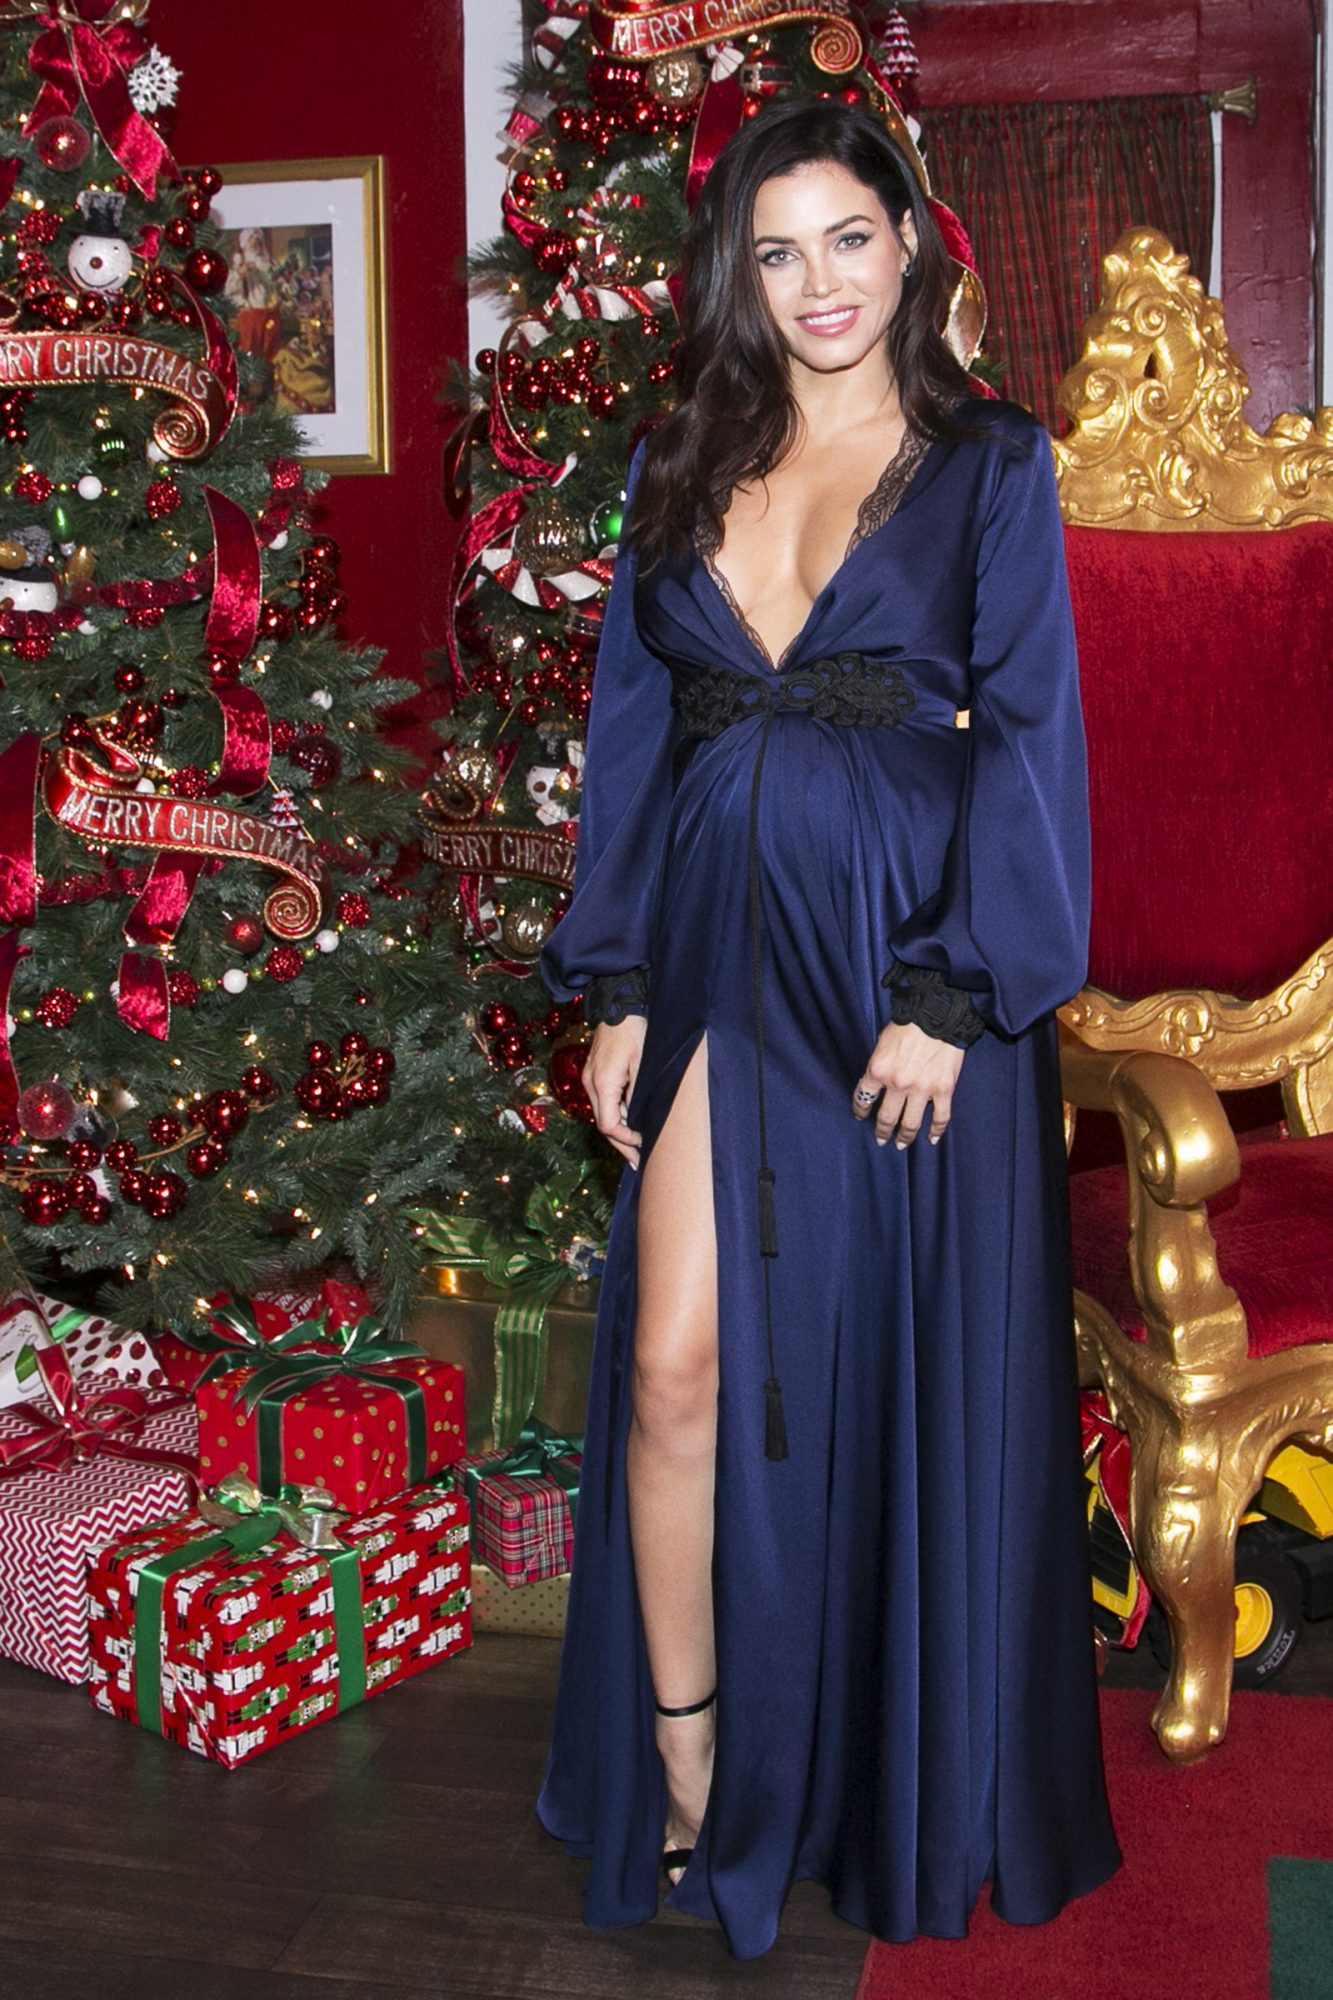 Jenna Dewan attends The Americana At Brand Annual Christmas Tree Lighting And Show at The Americana at Brand on November 14, 2019 in Glendale, California